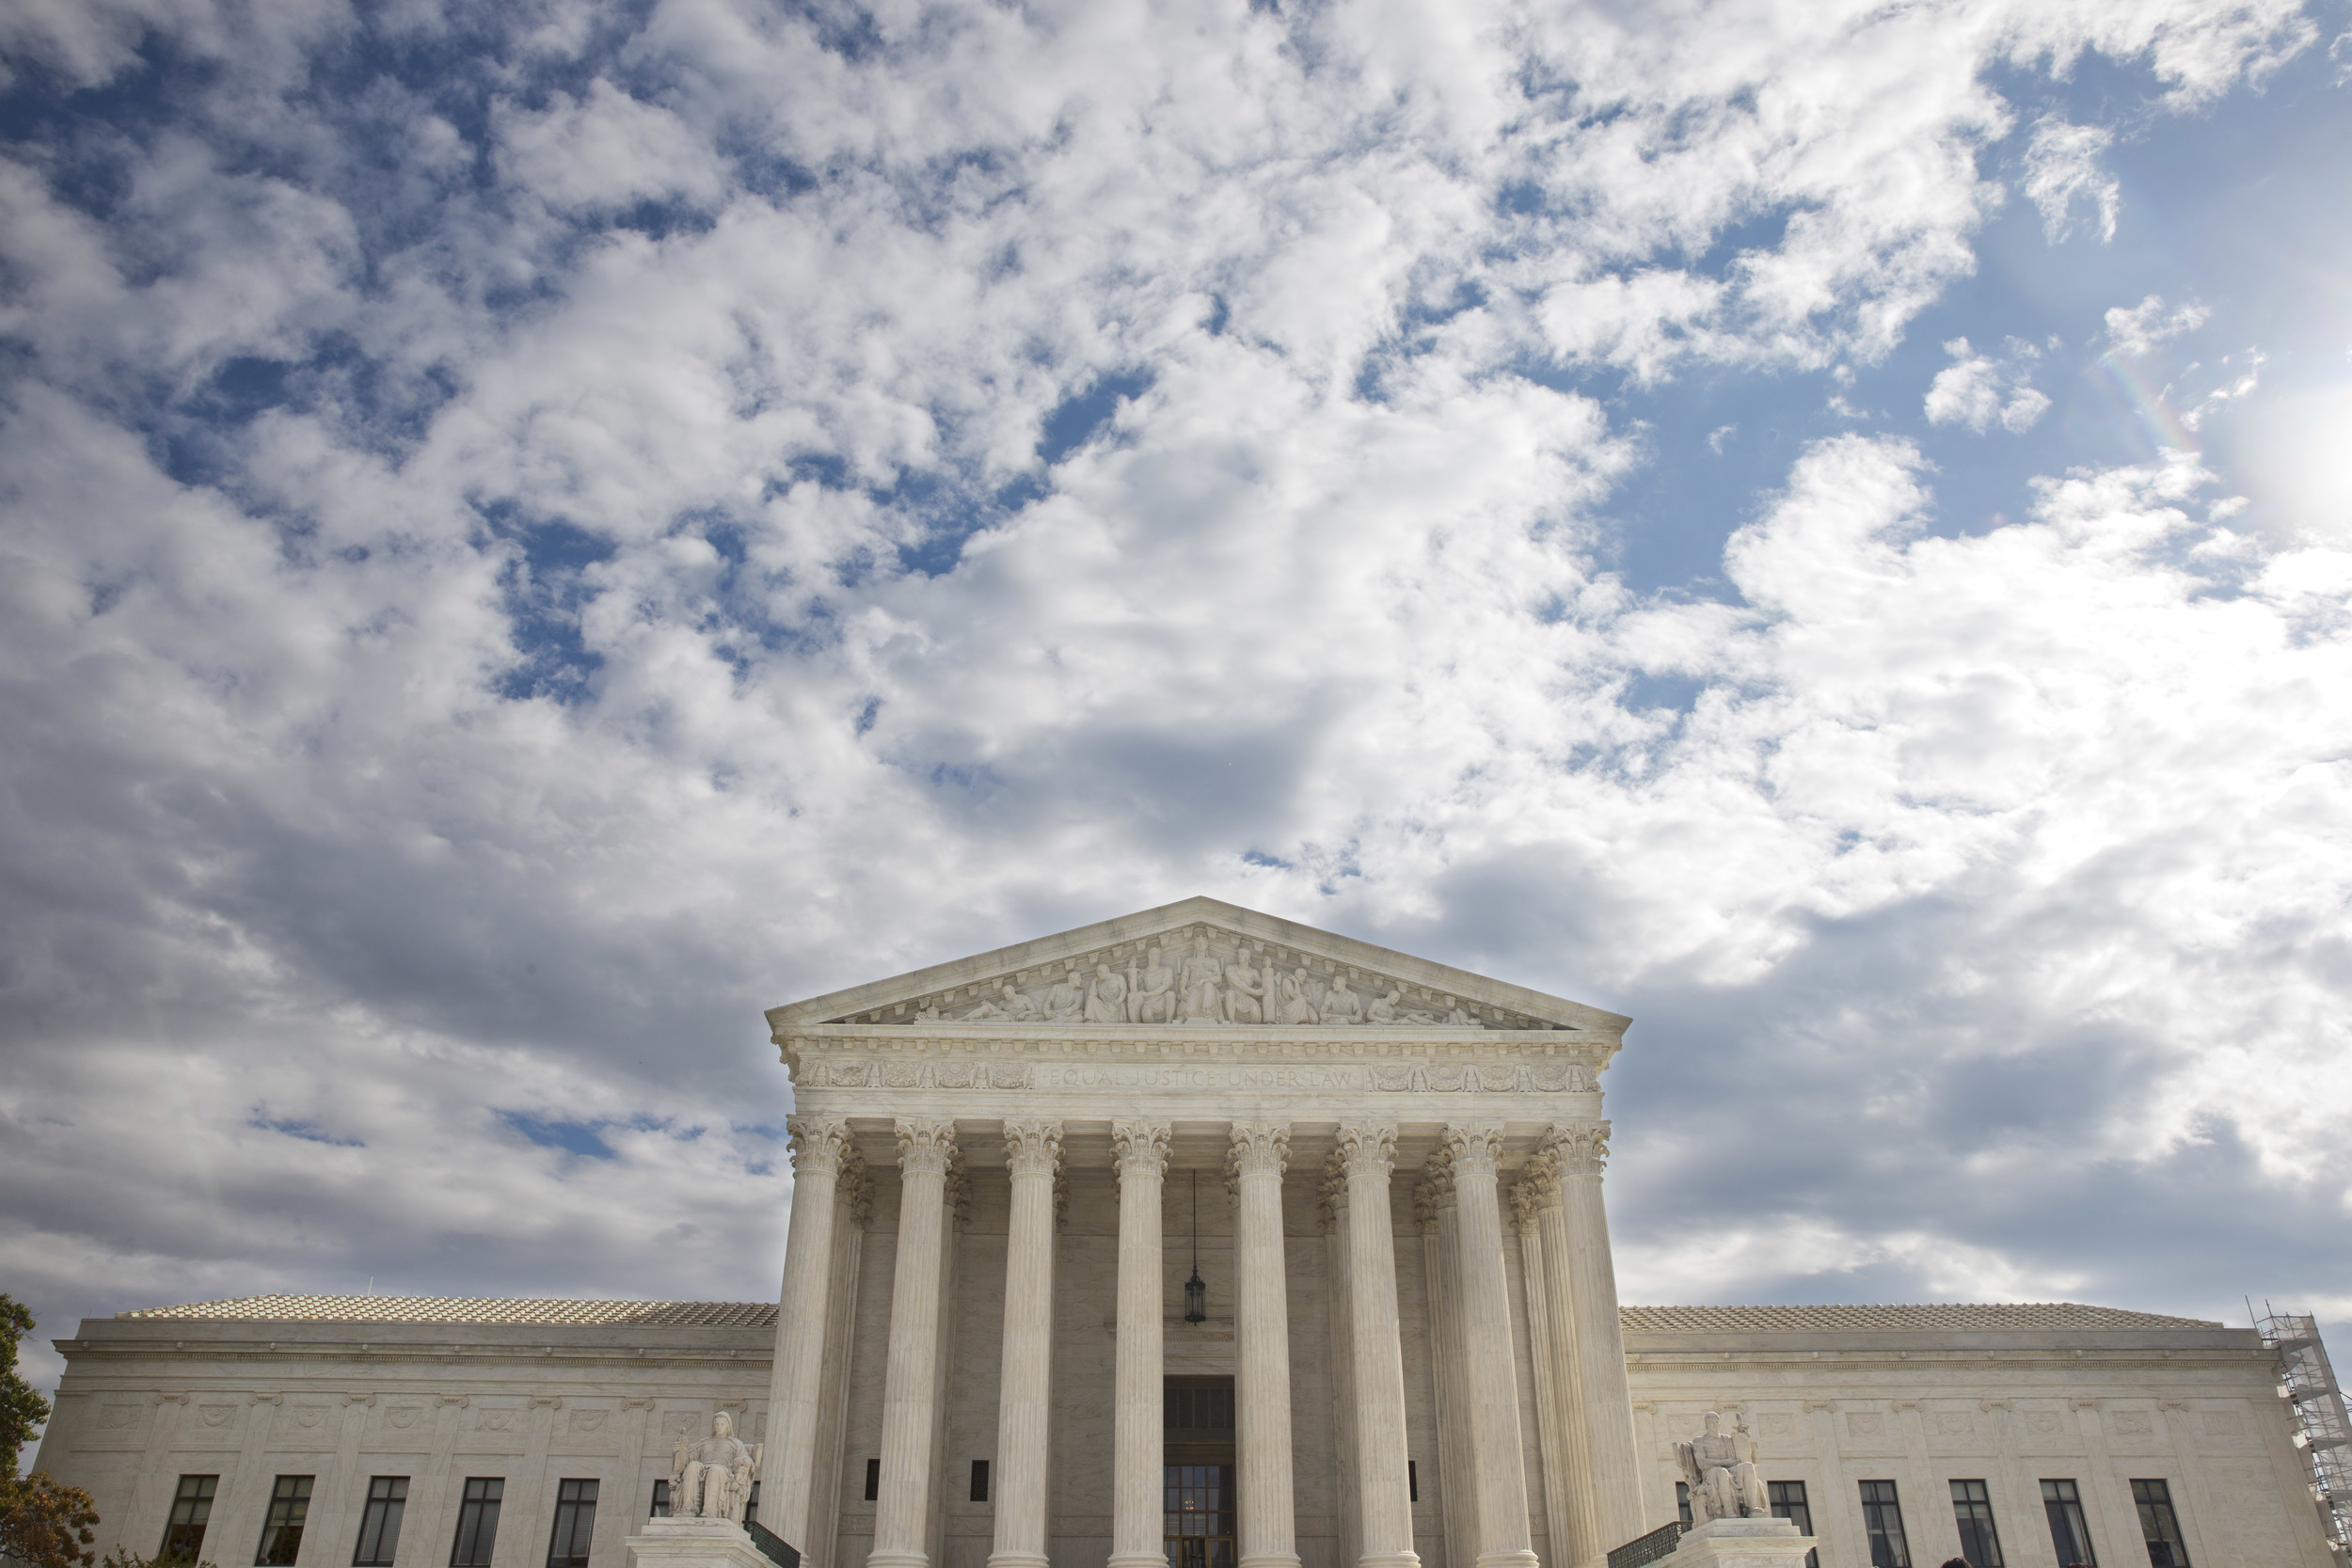 This Oct. 13, 2015, photo shows the Supreme Court in Washington. (Jacquelyn Martin/AP)